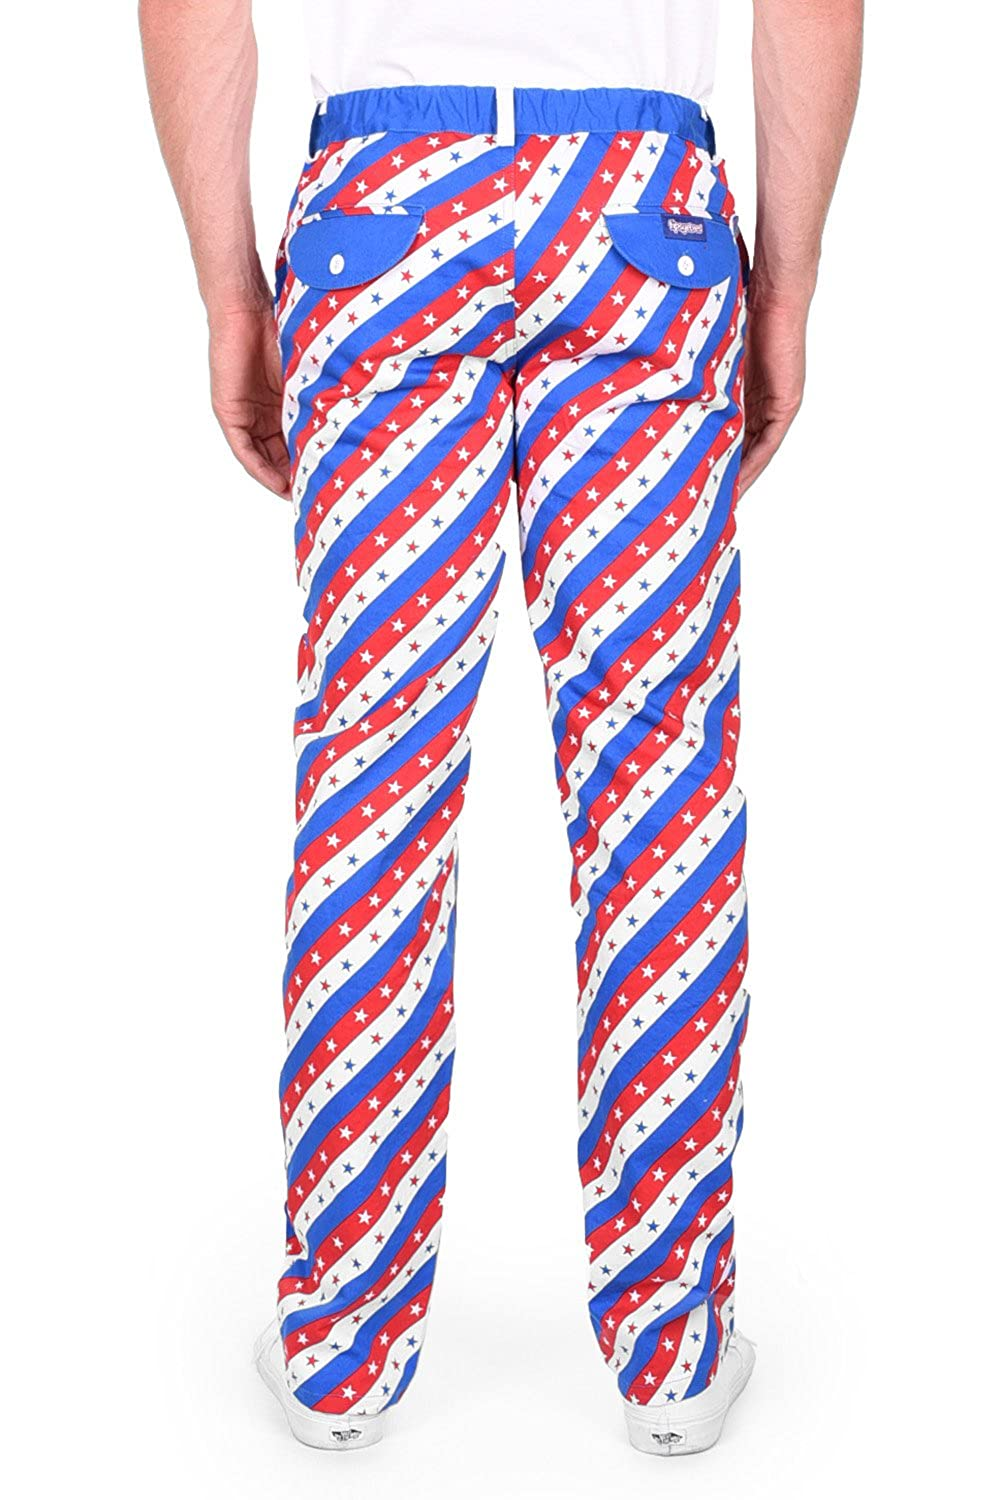 590ae7c3faa0 Tipsy Elves Men s Red White and Blue Patriotic USA Pants - American Flag  Golf Pants at Amazon Men s Clothing store